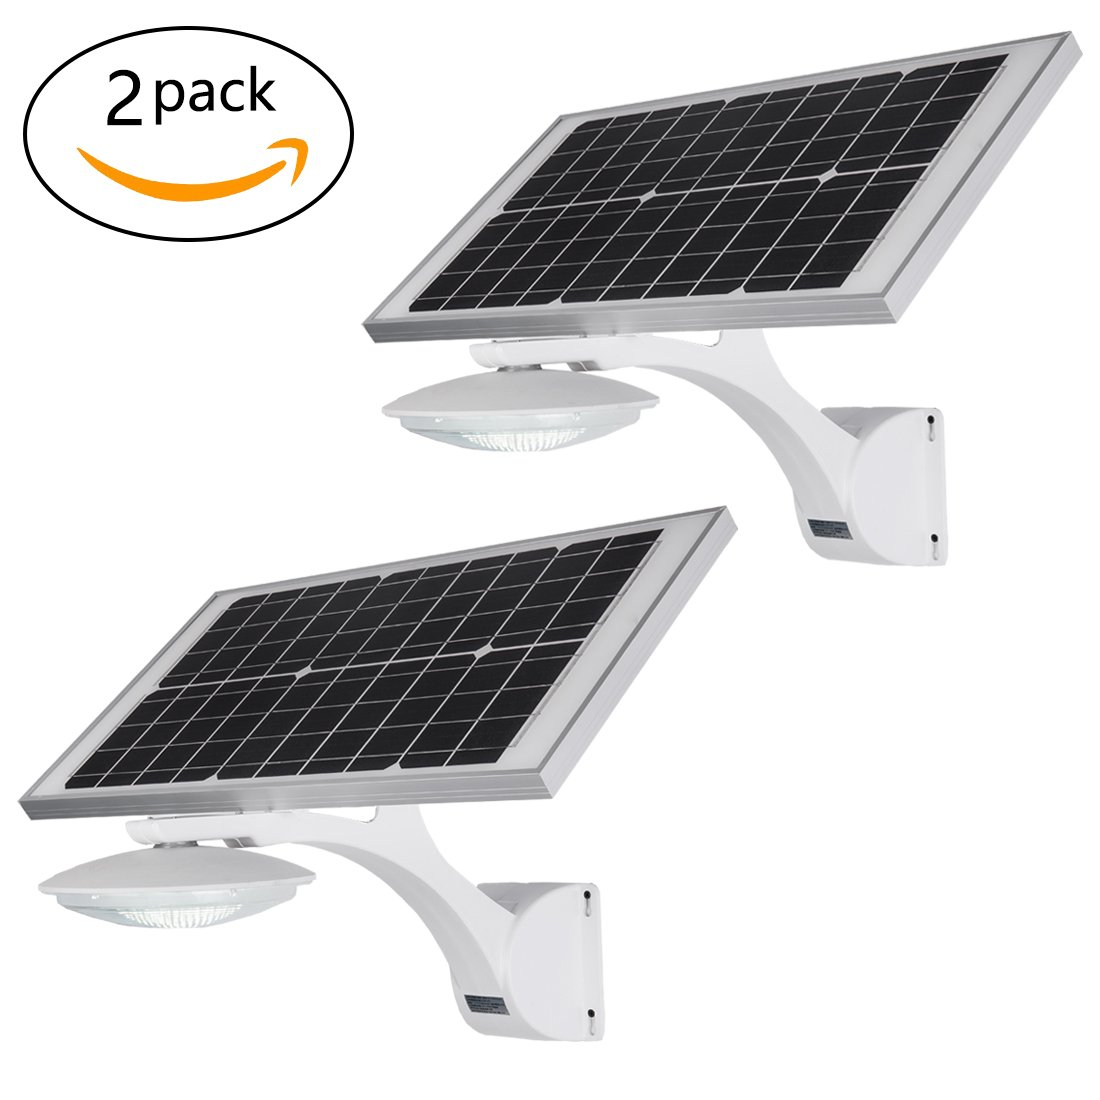 18 Watt LED Solar Street Light, Homocentric Outdoor Wireless LED Solar Motion Light, Waterproof Solar Post Light, Solar Powered Spotlight for Home, Garden, Lawn, Road, Hallway, Patio(2 Pack)